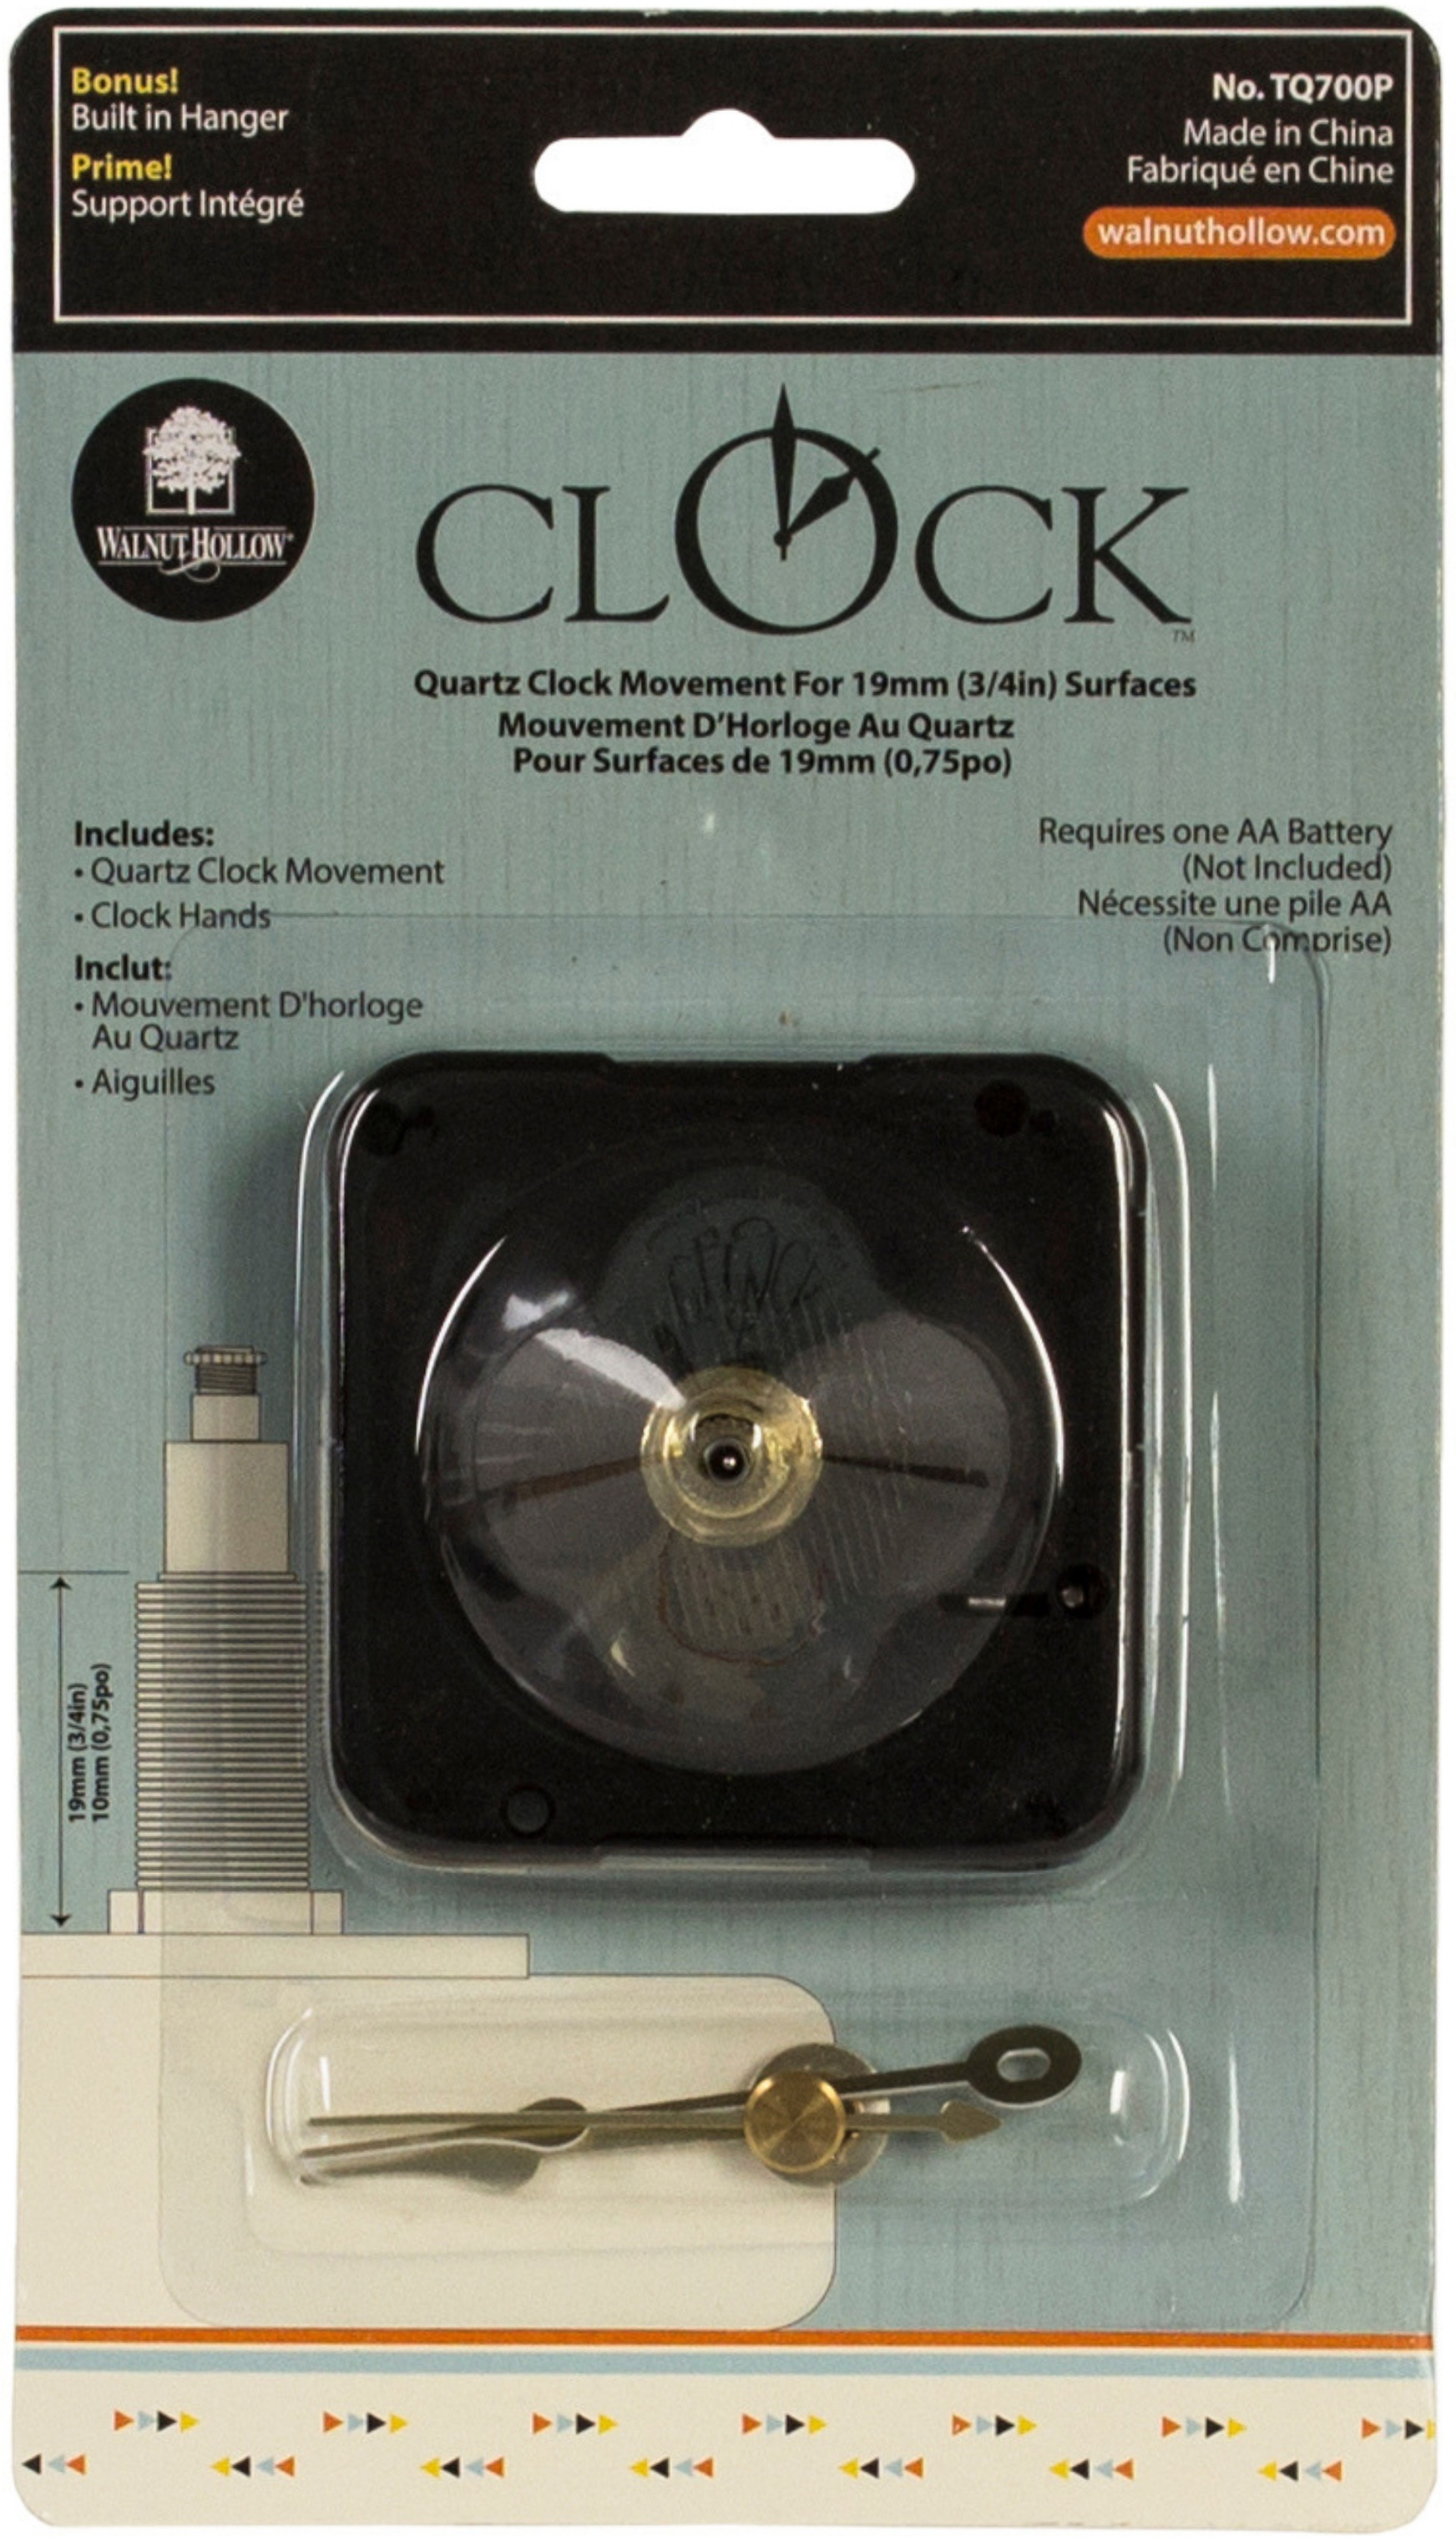 Quartz Clock Movement-For .75 Surfaces